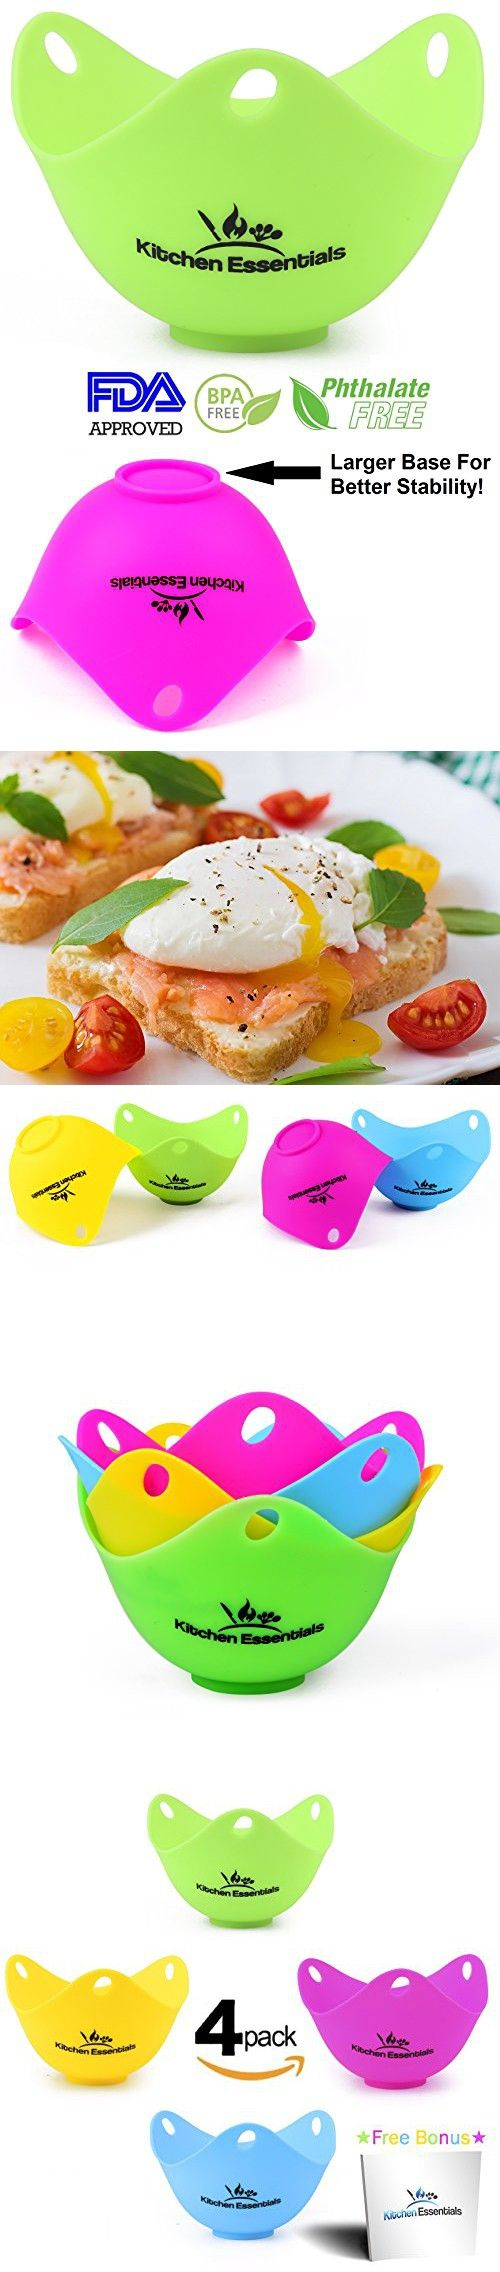 Kitchen Essentials Silicone Egg Poachers - New Easy Release Matte Design (4 Pack), Large Premium Silicone Egg Poacher Cups, Silicone Egg Cups Cookware for Making Perfect Poached Eggs in Just Minutes